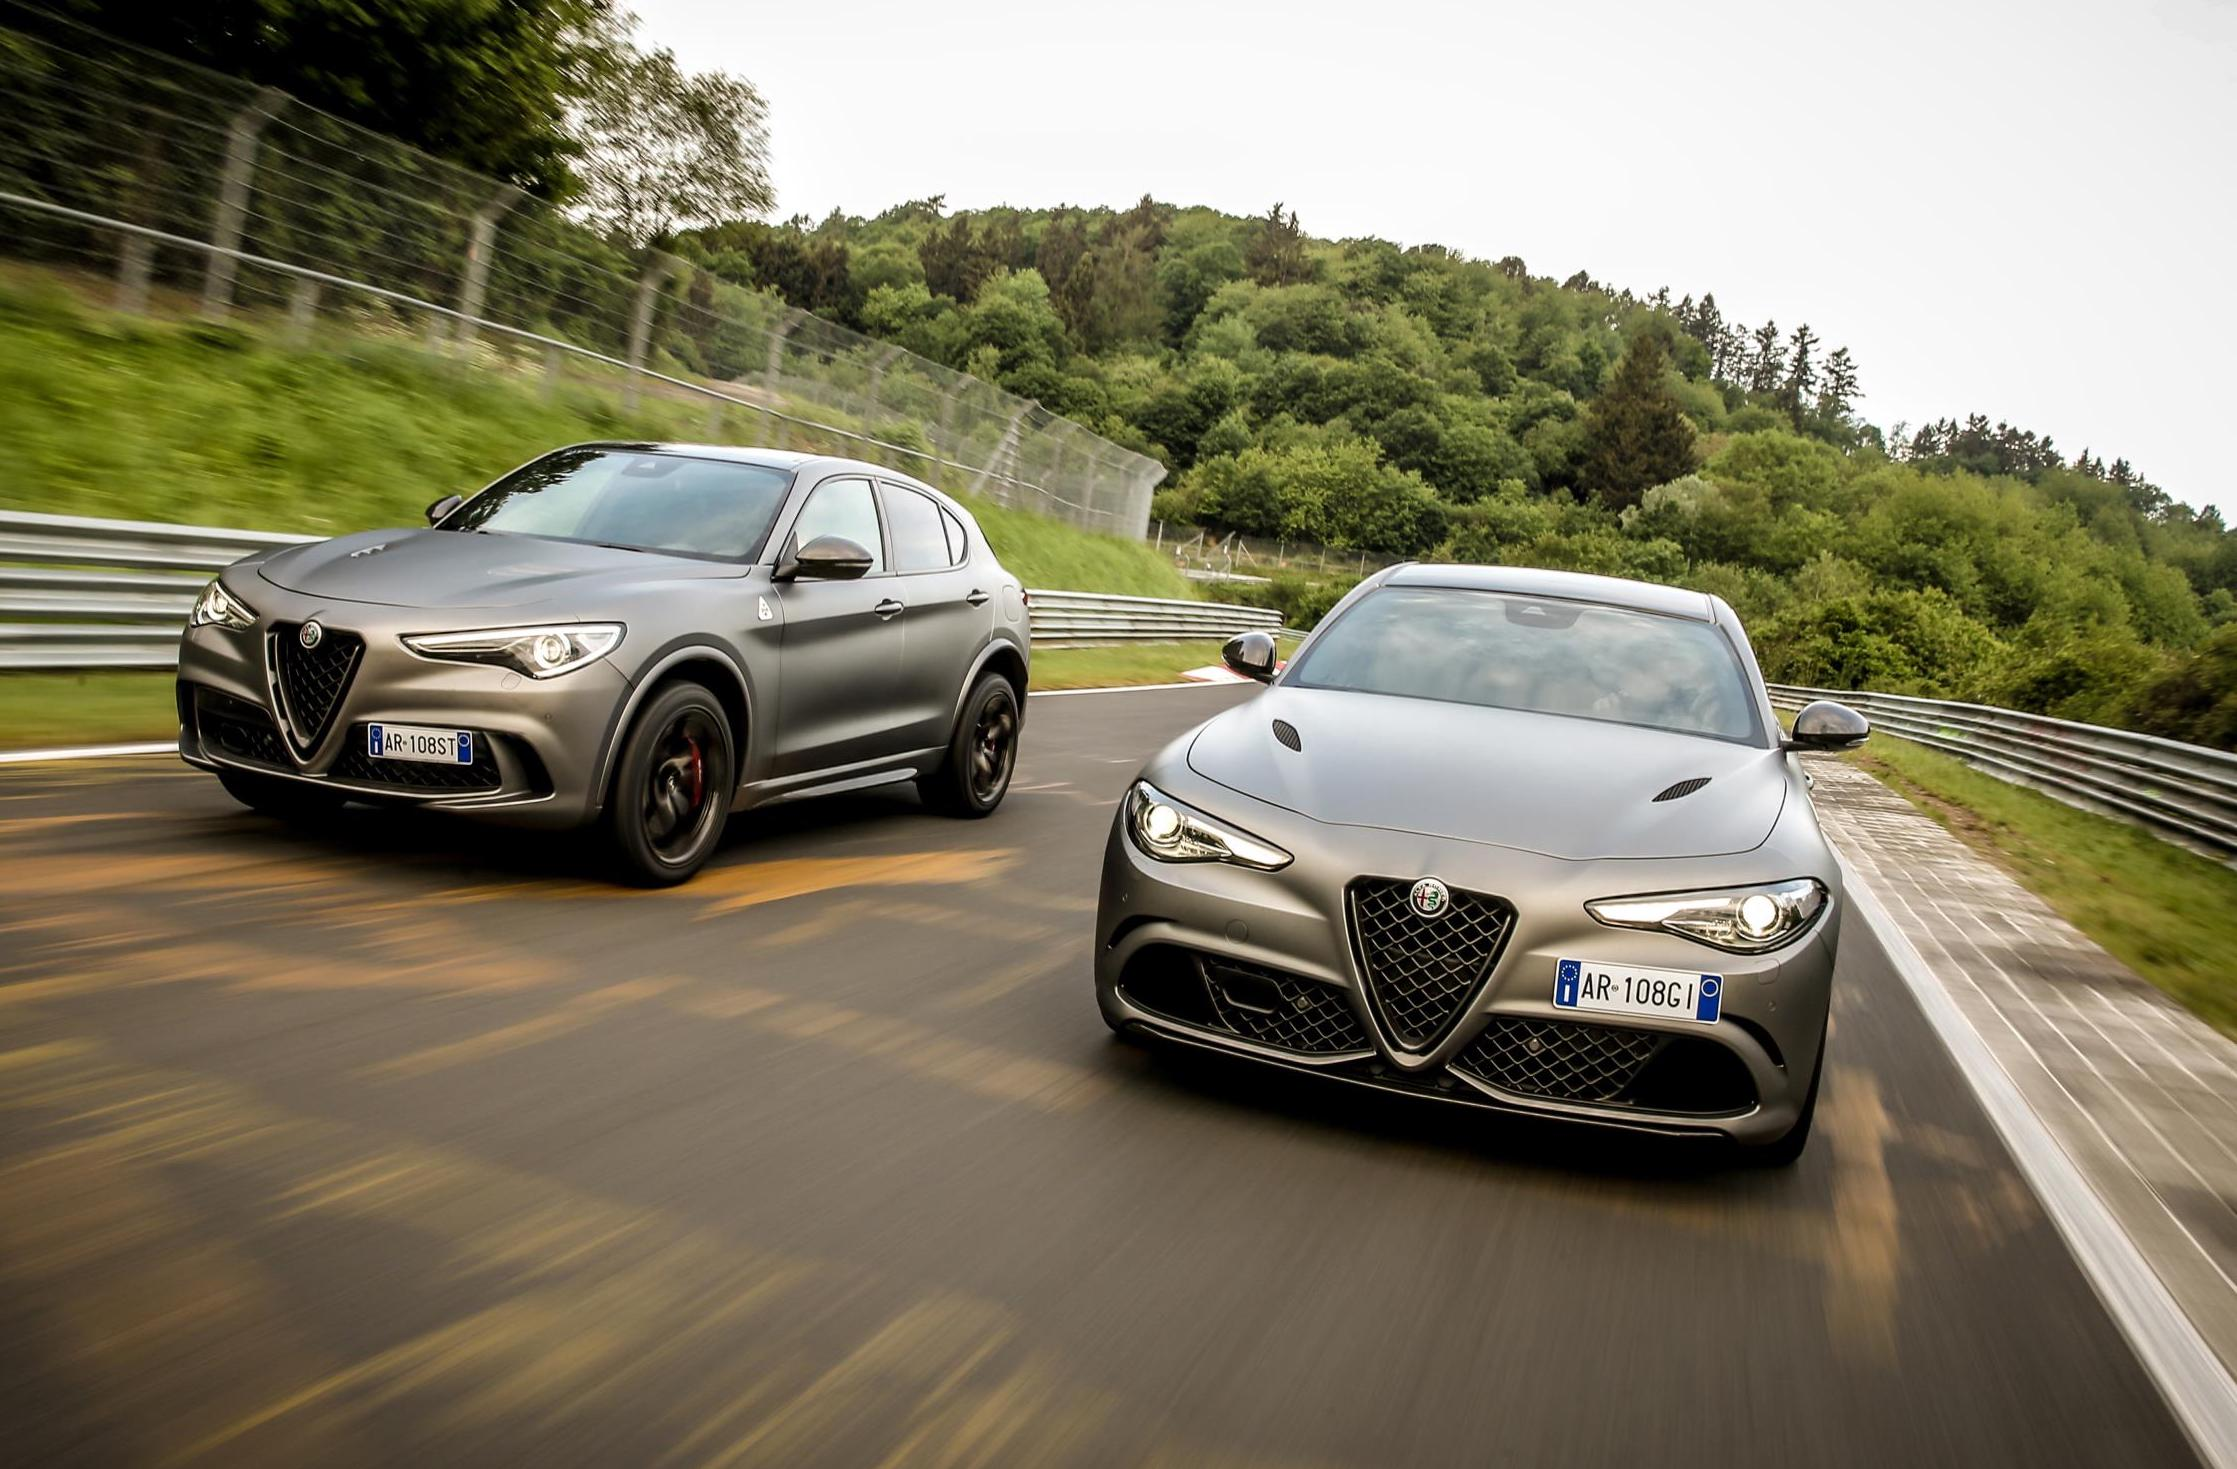 alfa romeo giulia qv nring stelvio qv nring editions revealed performancedrive. Black Bedroom Furniture Sets. Home Design Ideas